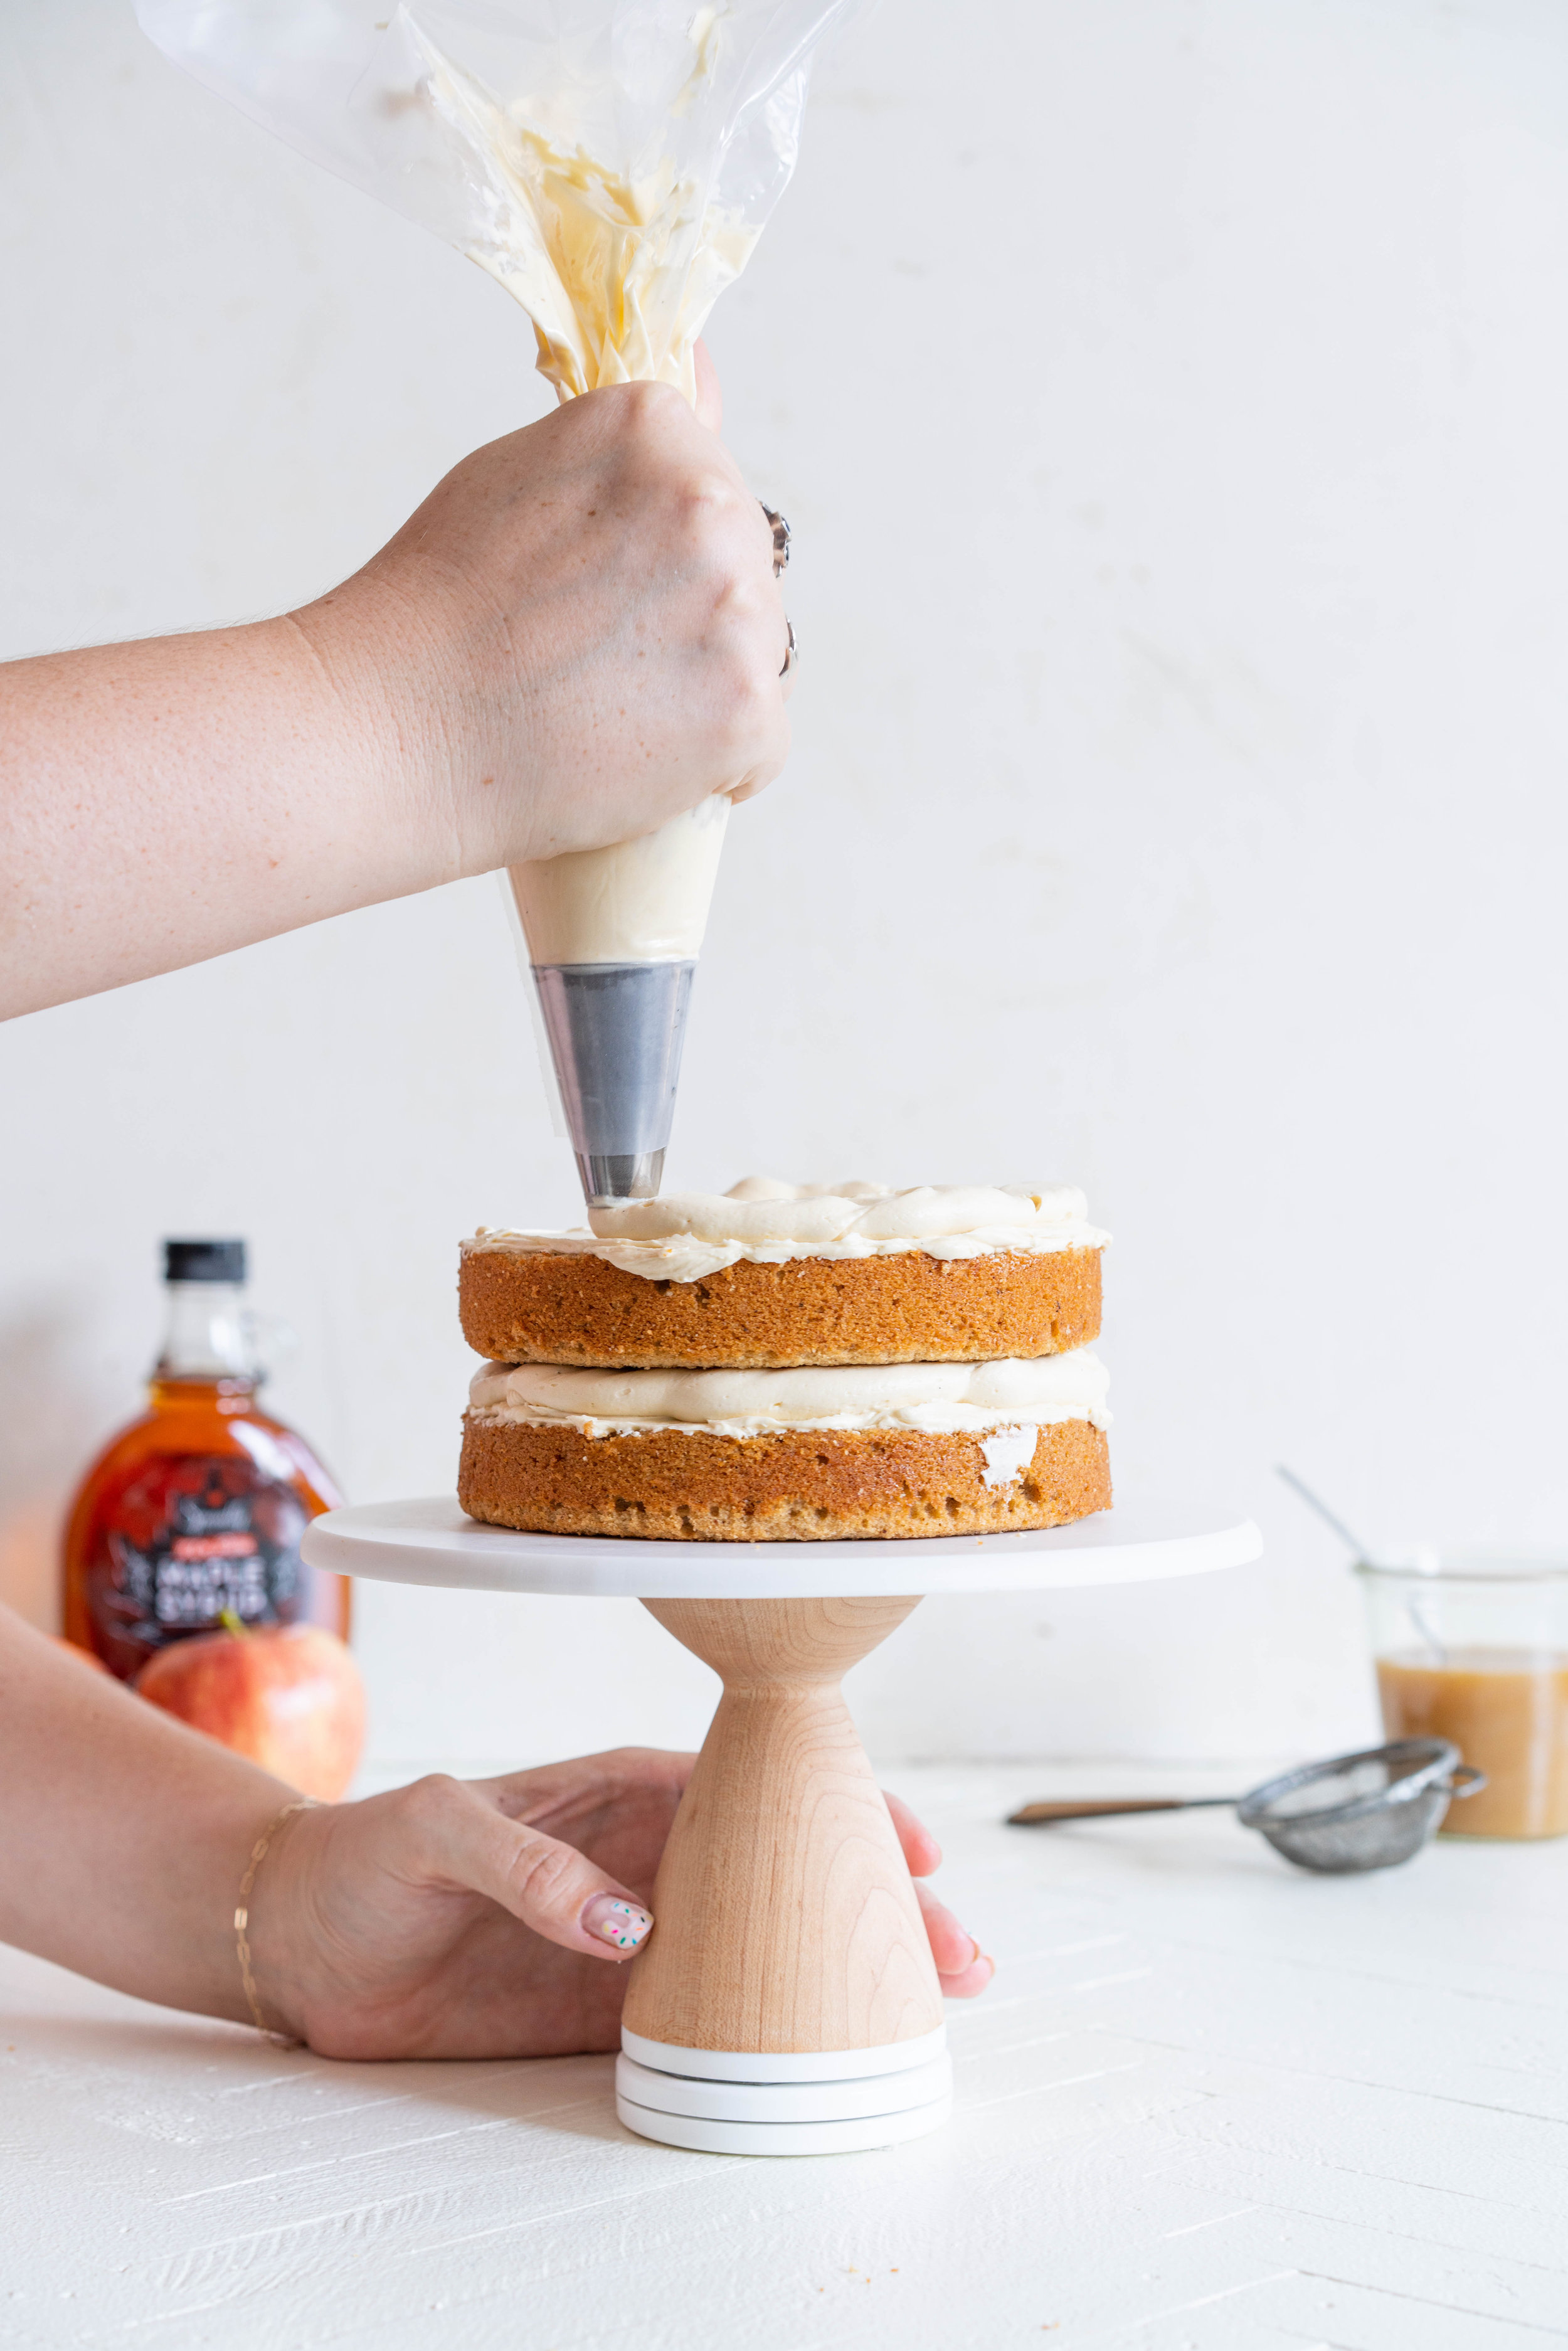 Spiced Brown Sugar cake with Cinnamon Apple Filling and Maple Caramel German Buttercream. This layer cake screams fall - a cozy brown sugar spice cake is layered with a cinnamon apple filling and a maple caramel german buttercream, then finished with a maple salted caramel drizzle and a dusting of cinnamon. This is the perfect fall inspired layer cake #autumncake #applecake #layercake